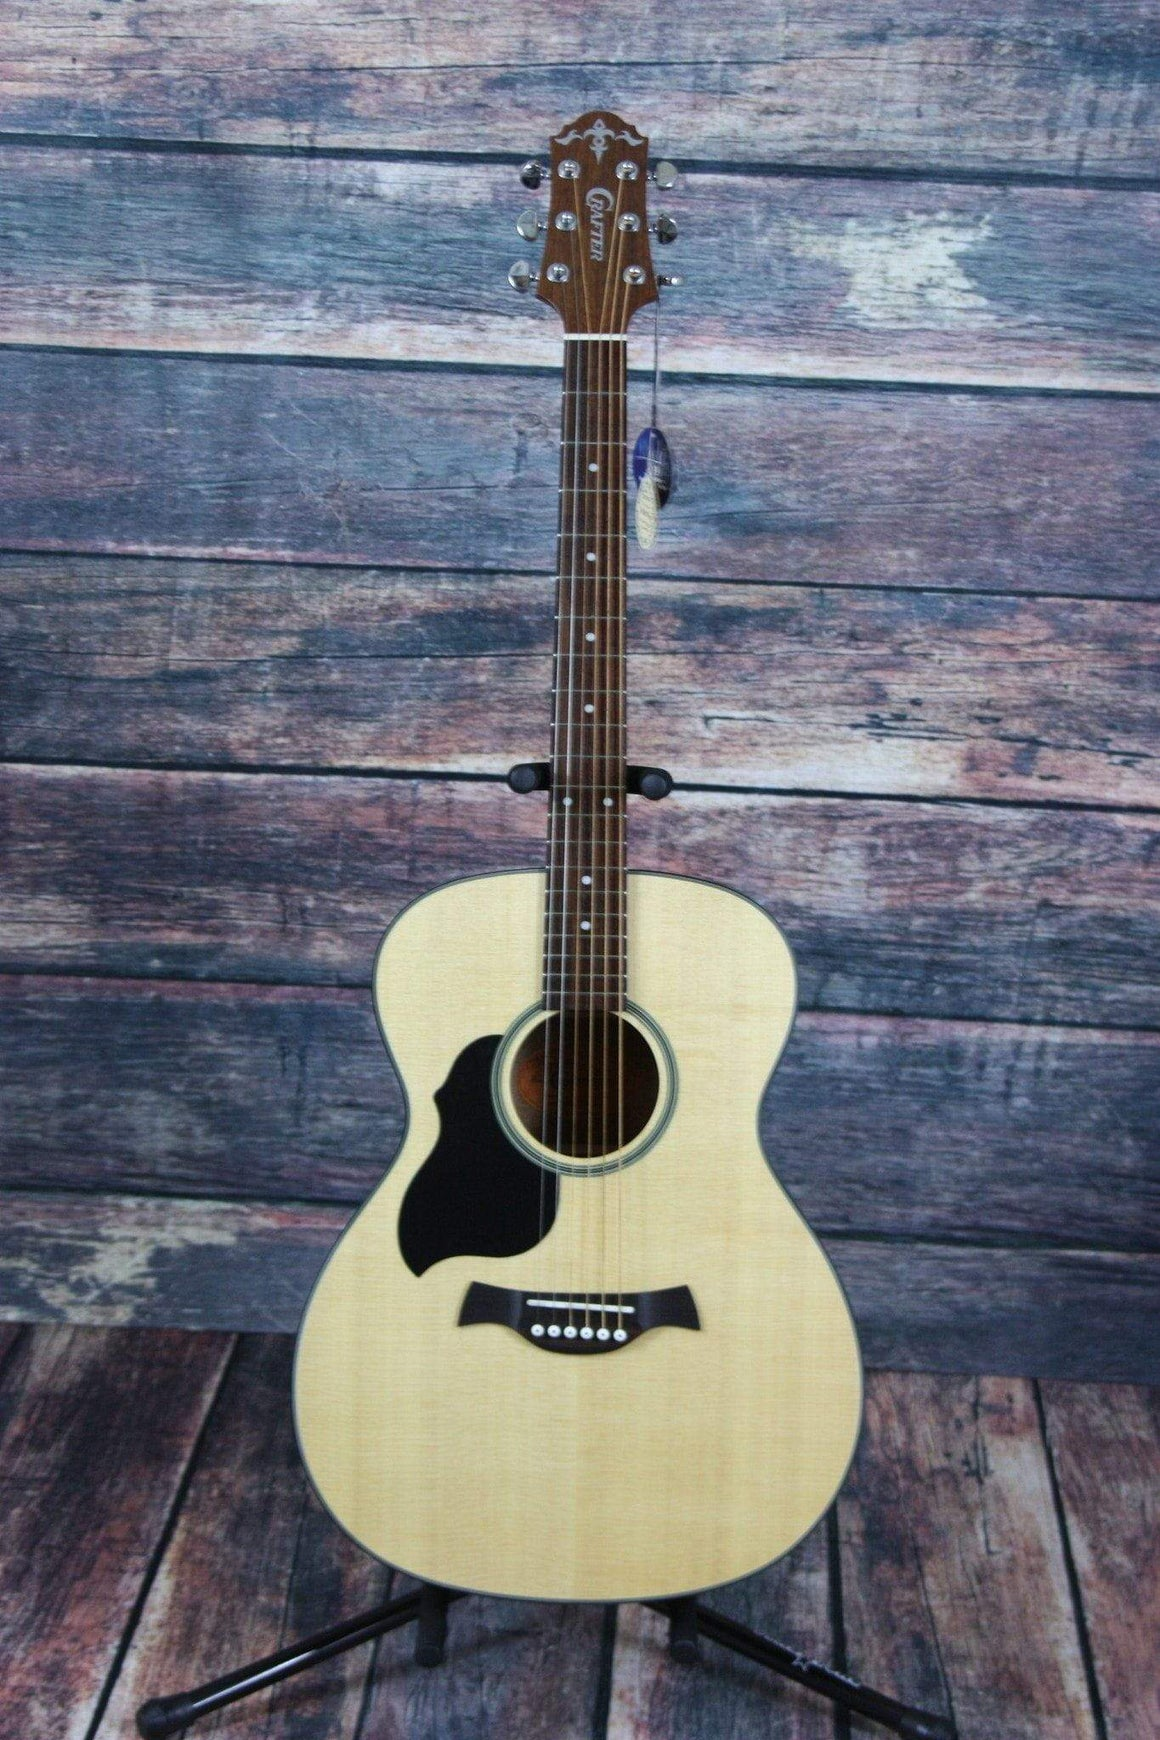 Crafter Acoustic Guitar Guitar Only Crafter Left Handed LITE-T LH/SP Orchestra Model Acoustic Guitar with Solid Top